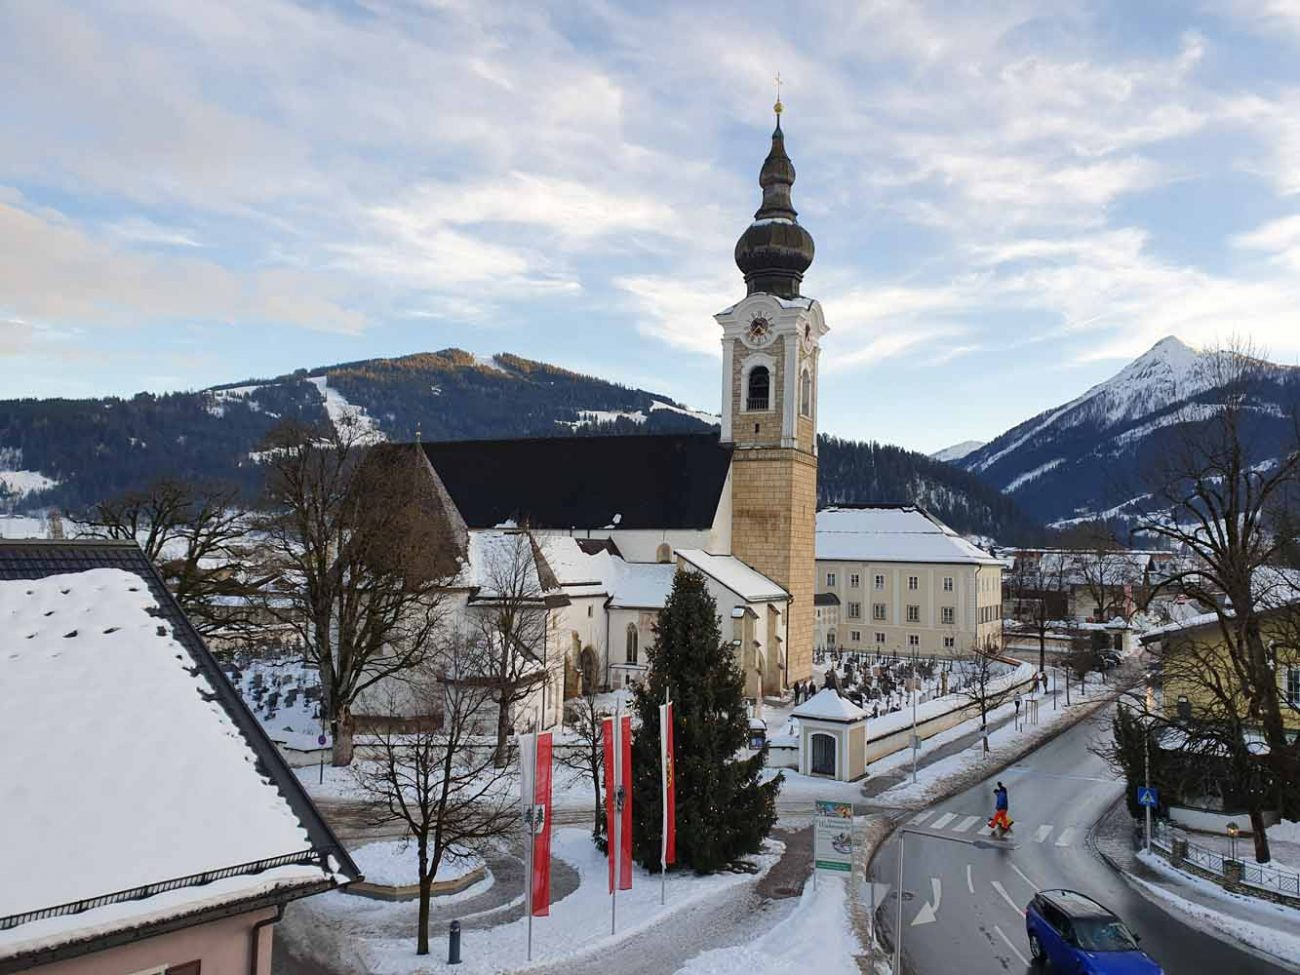 Winterurlaub in Altenmarkt im Pongau